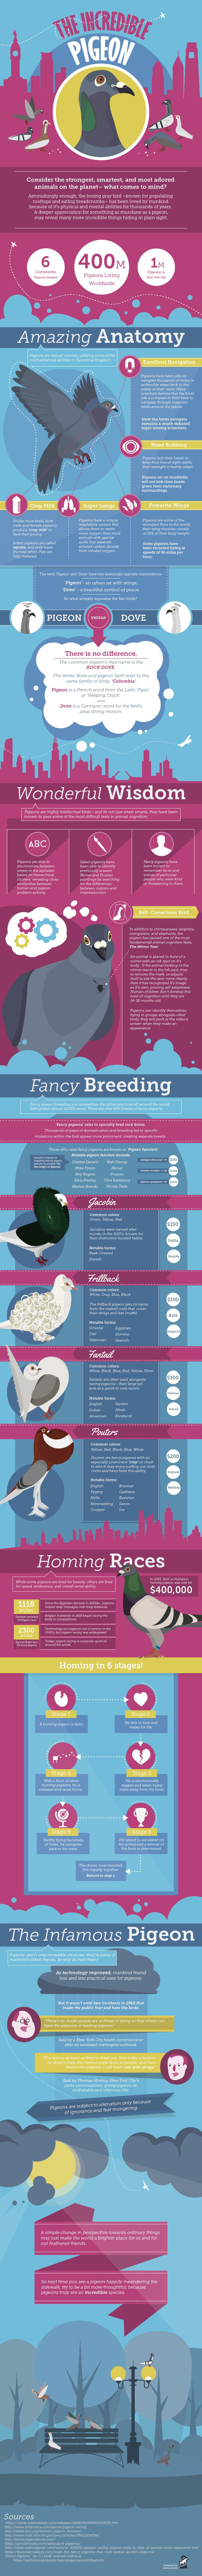 The Incredible Pigeon #Infographic #Birds #Pigeon